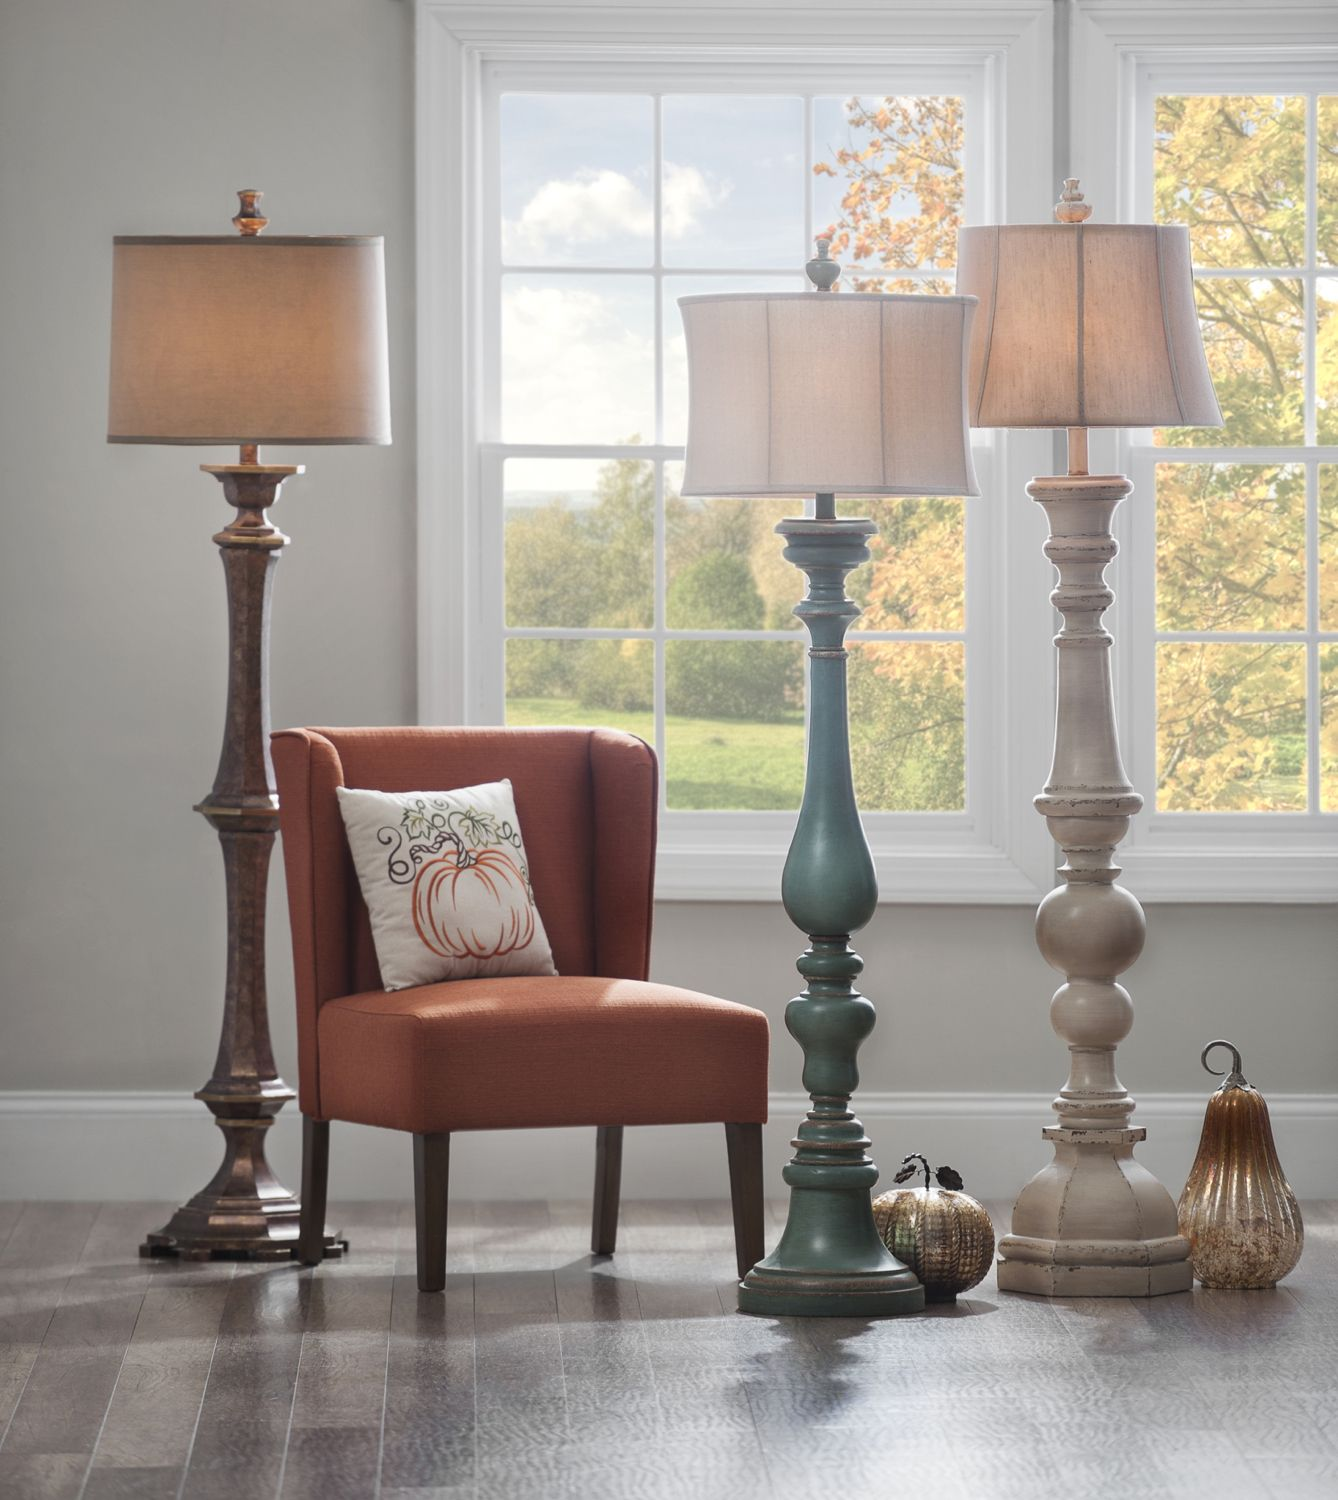 Decorative Lamps For Living Room It 39s Time To Ditch The Cheap And Simplistic Floor Lamps